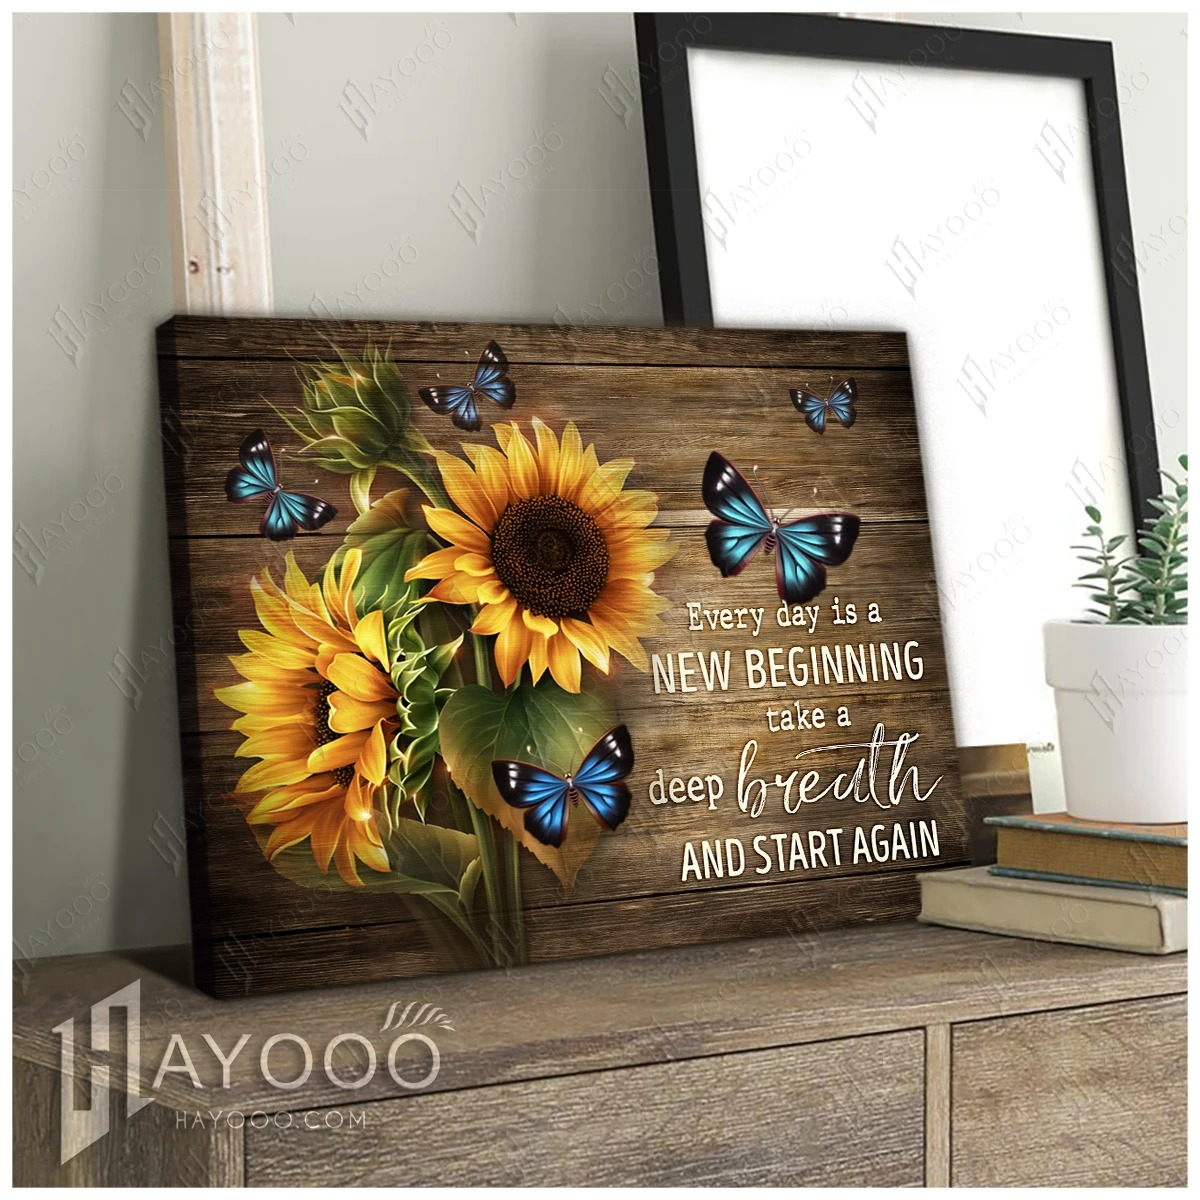 Sunflower and butterfly Everyday is a new beginning take a deep breath smile and start again gallery wrapped canvas 1